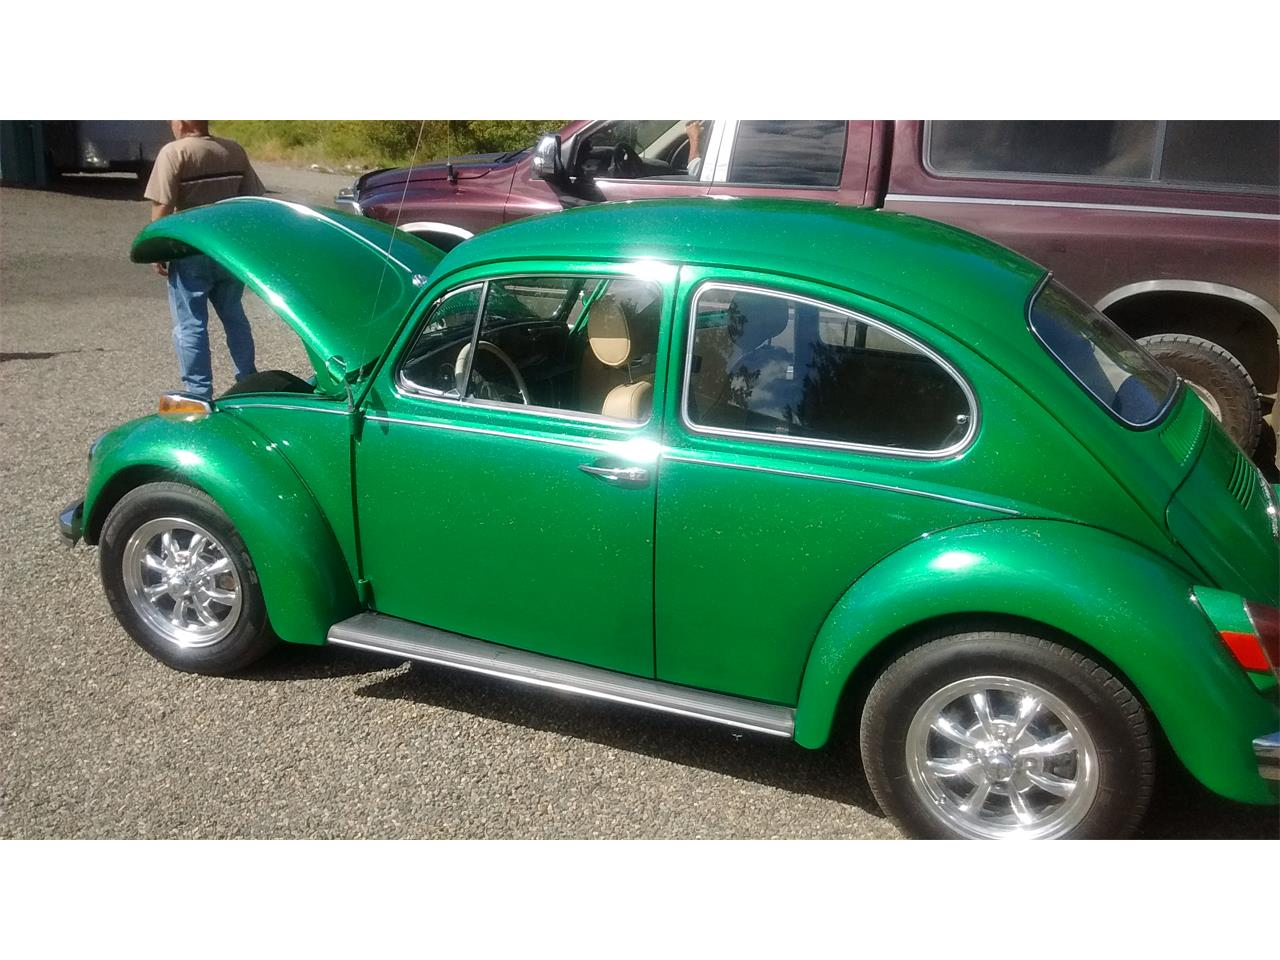 Large Picture of '69 Beetle located in Washington - $16,500.00 Offered by a Private Seller - QLZV